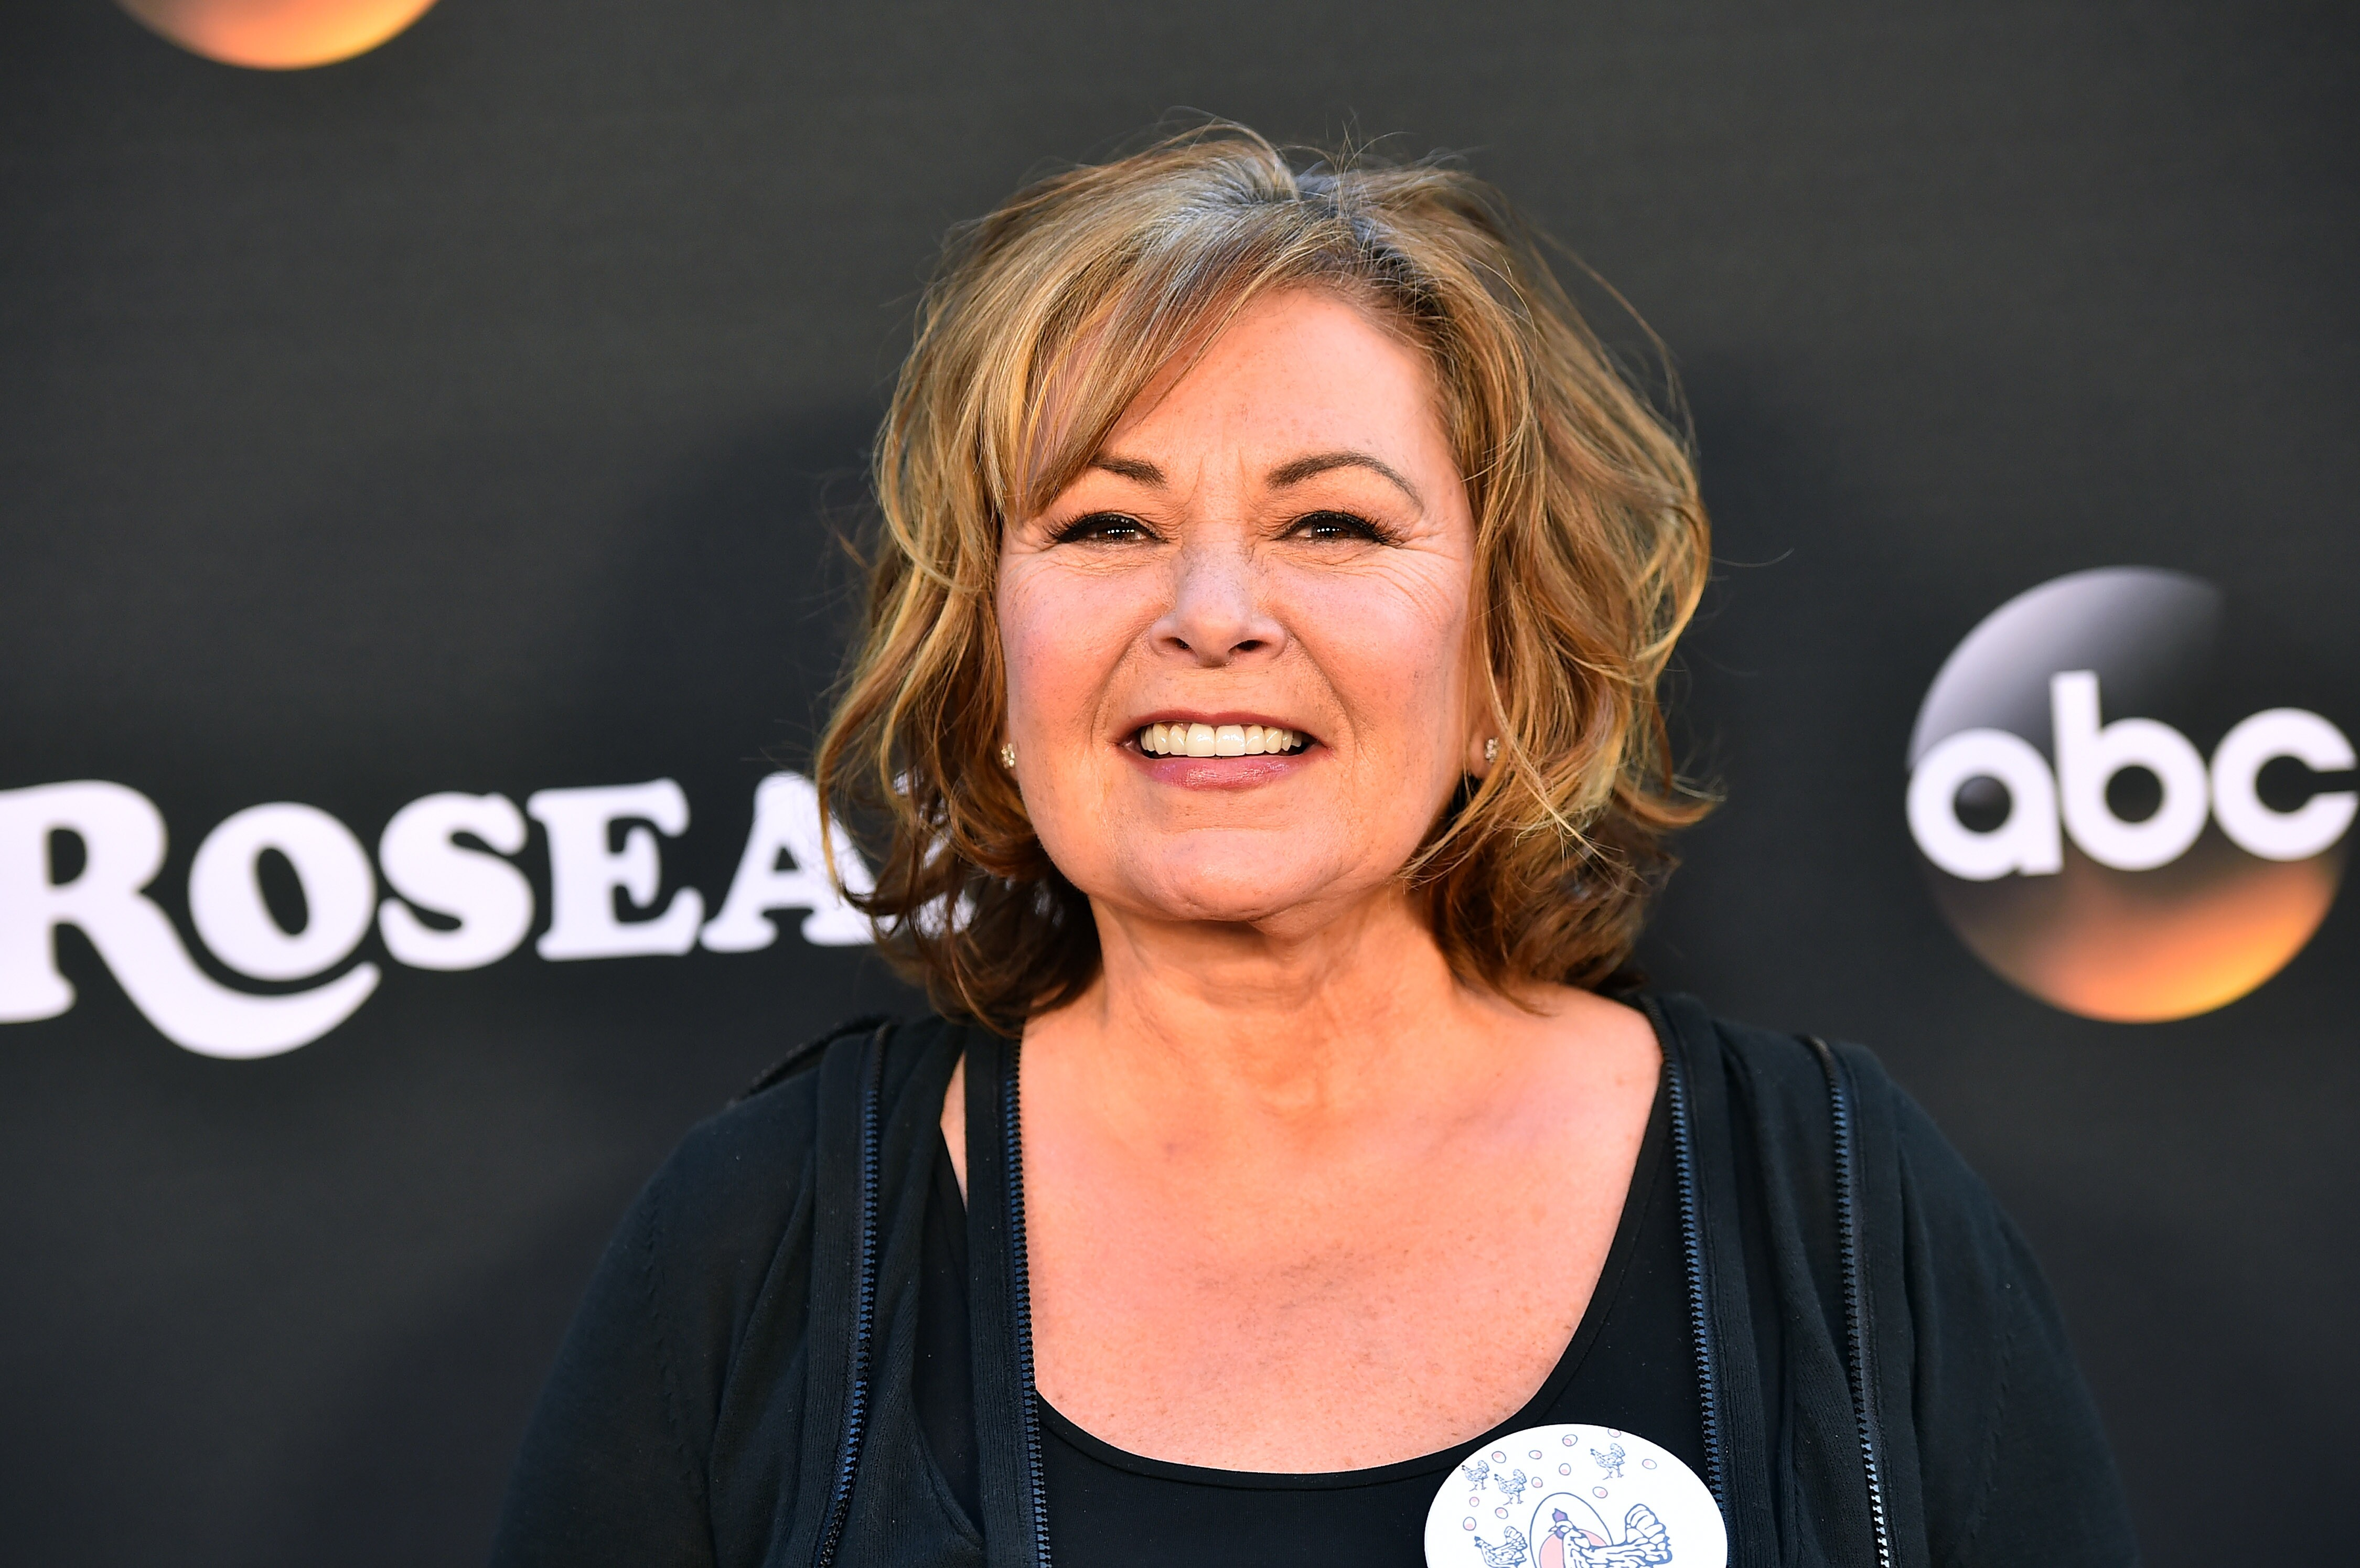 Roseanne Barr Show 2020.Roseanne Canceled Why Trump Supporters Fell For Her Shtick